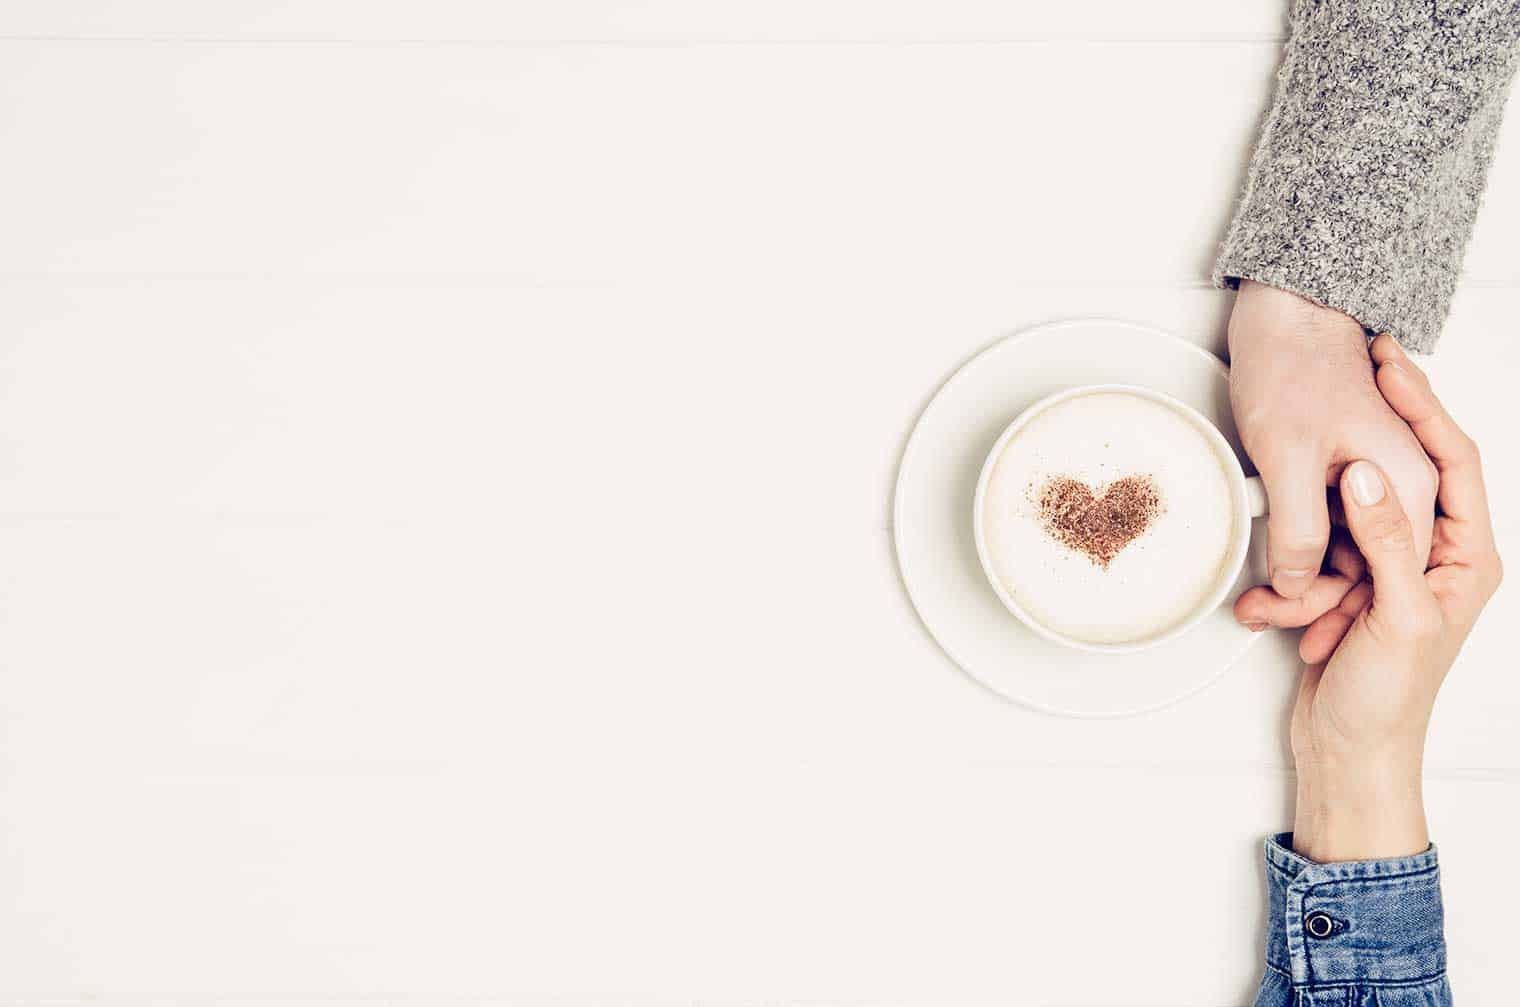 romantic date ideas, photo of coffee mug and couple holding hands